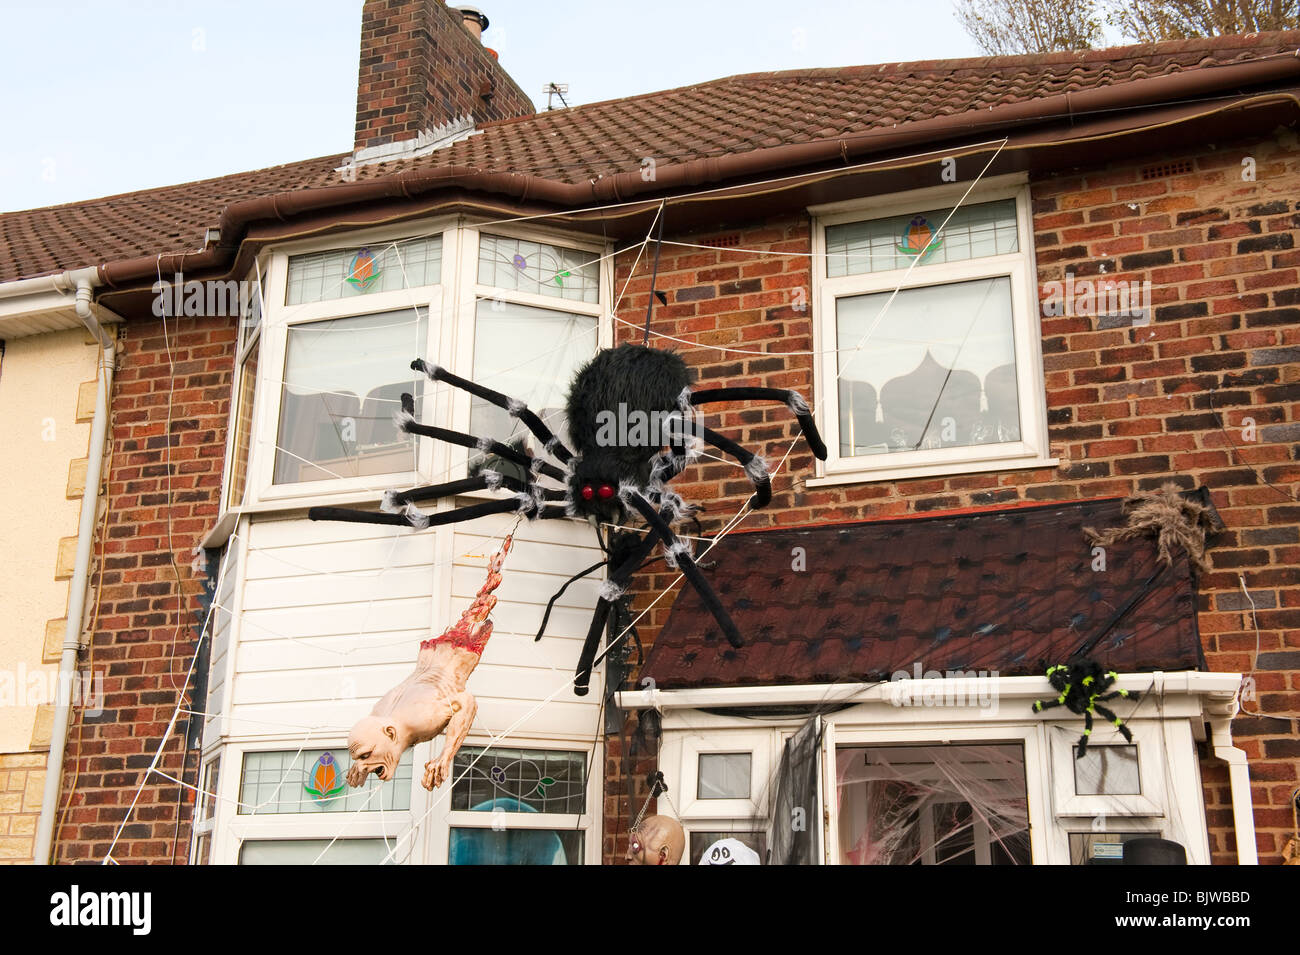 huge spider and halloween decorations on house